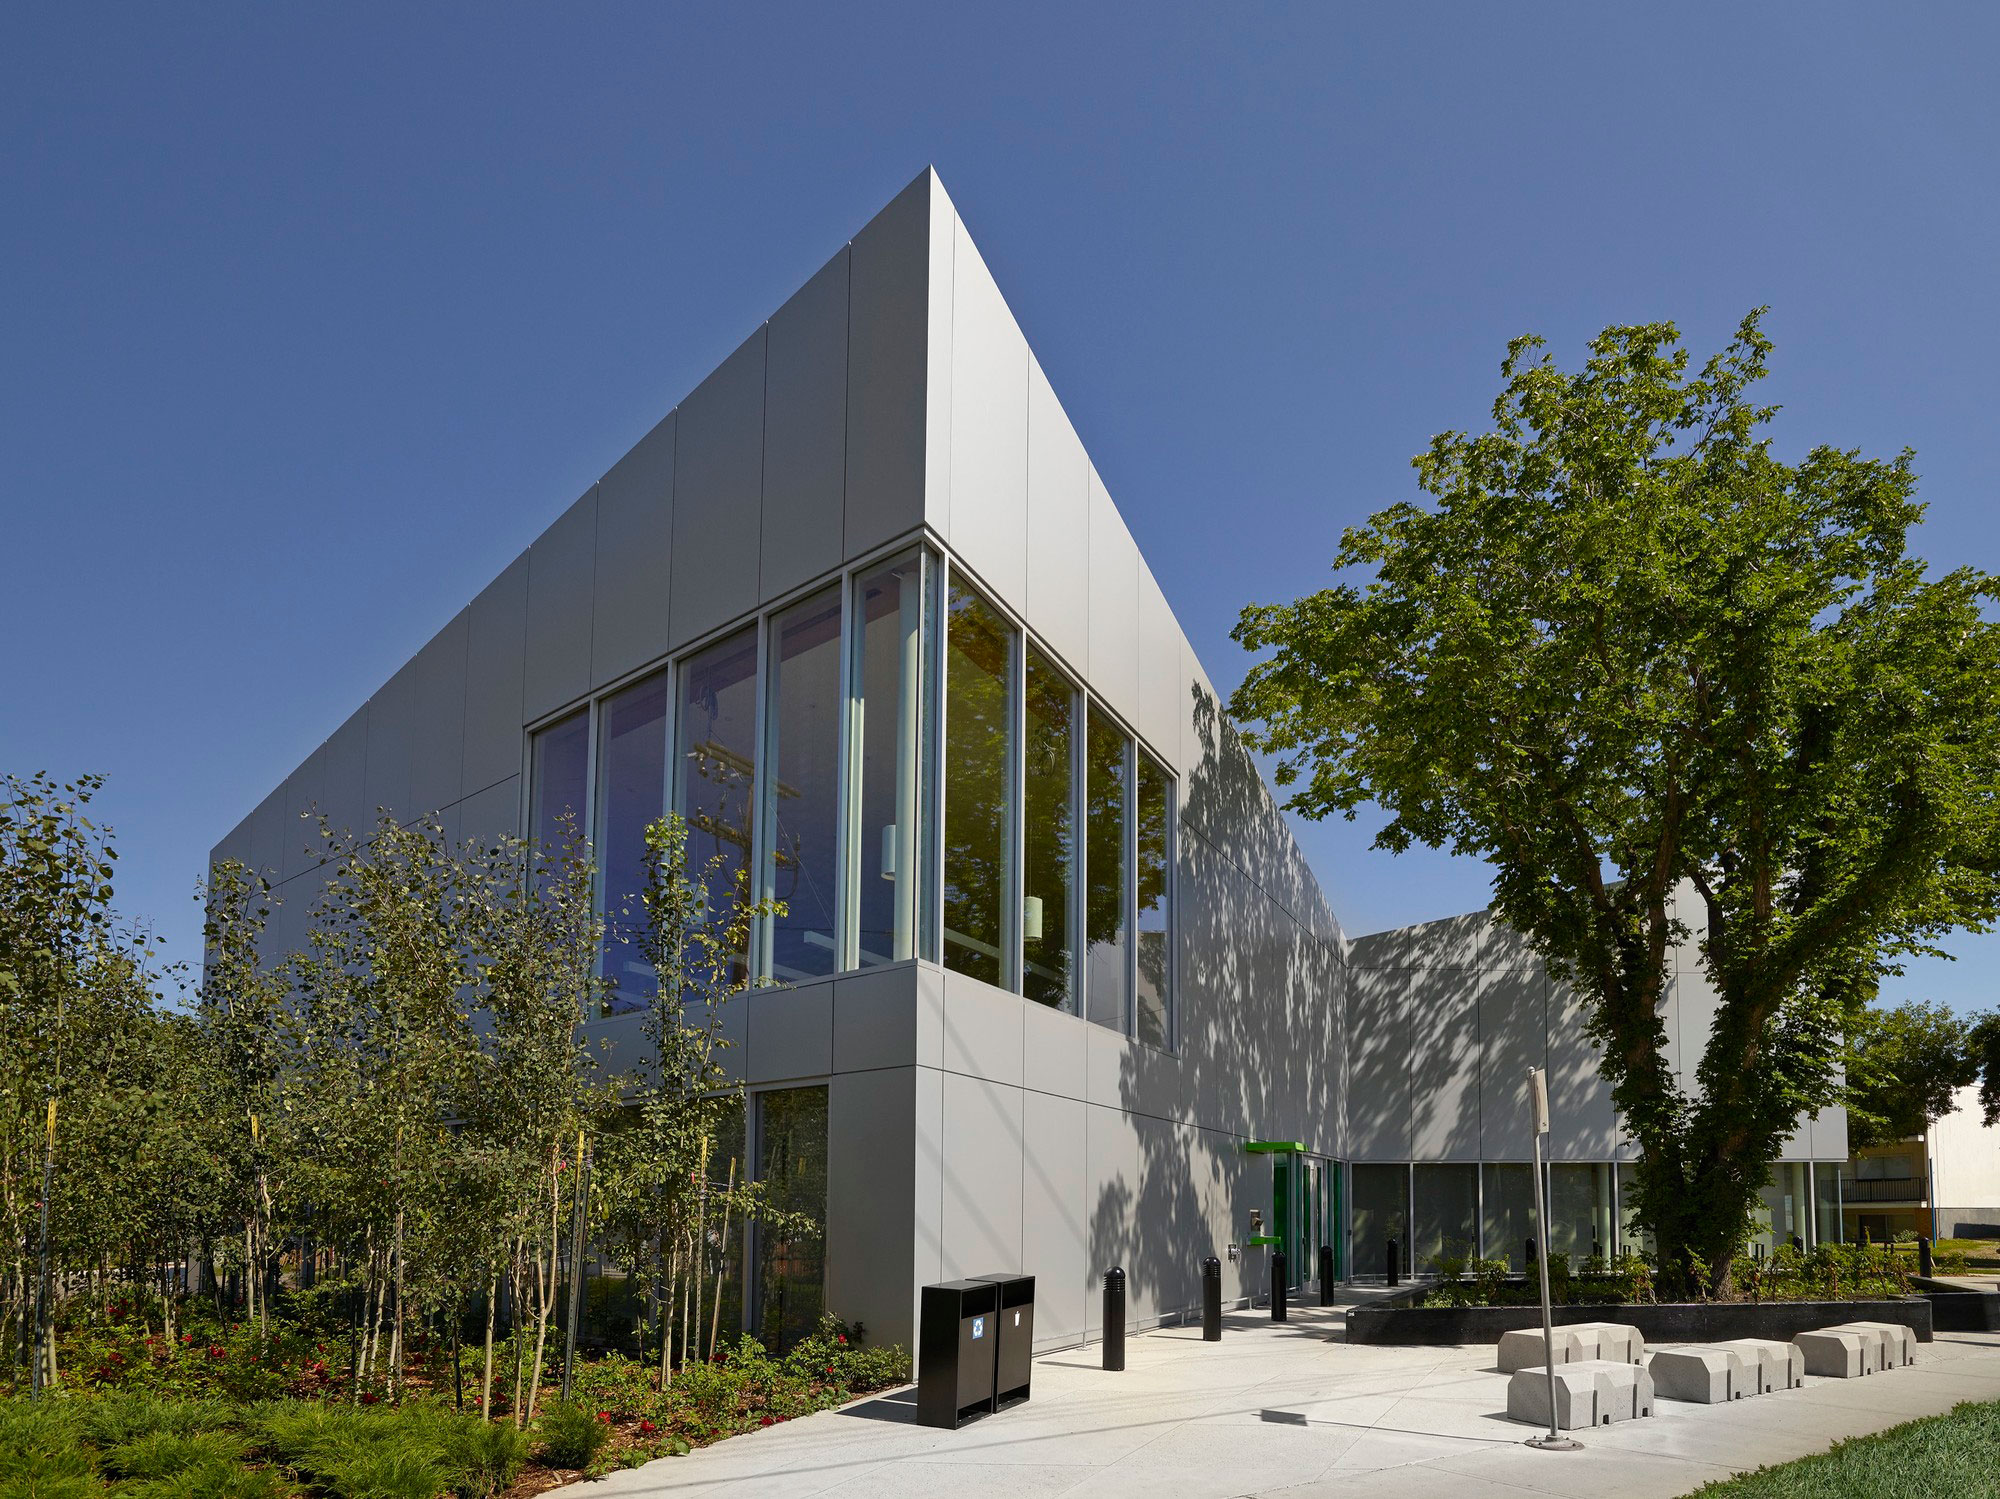 Highlands Branch Library, Schmidt Hammer Lassen, Marshall Tittemore Architects, Thermal Systems, Alucobond Aluminum Composite, Merle Prosofsky Photography